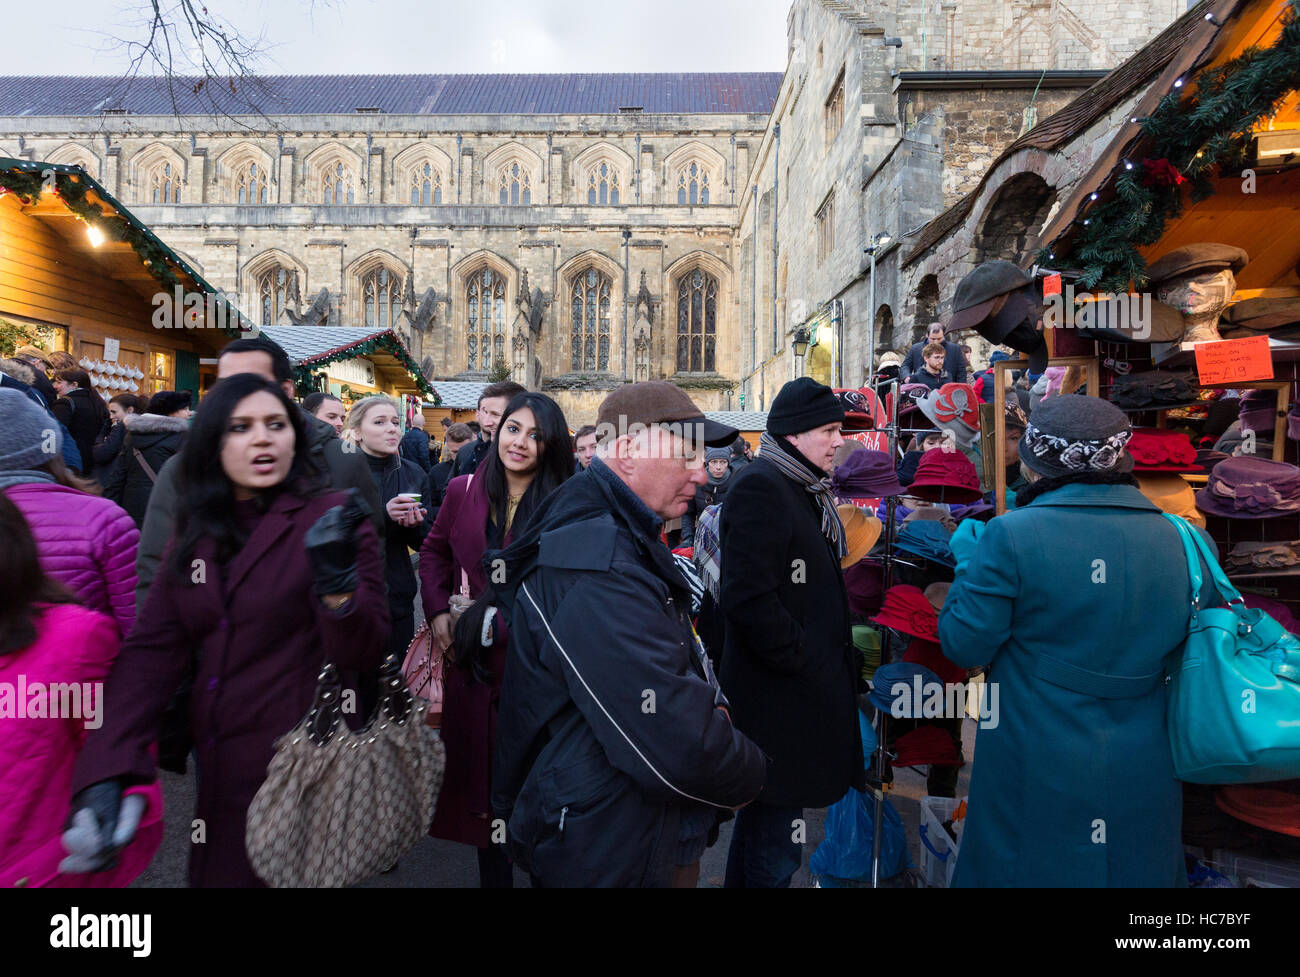 Crowds of people at Winchester Christmas market, Winchester Hampshire England UK - Stock Image